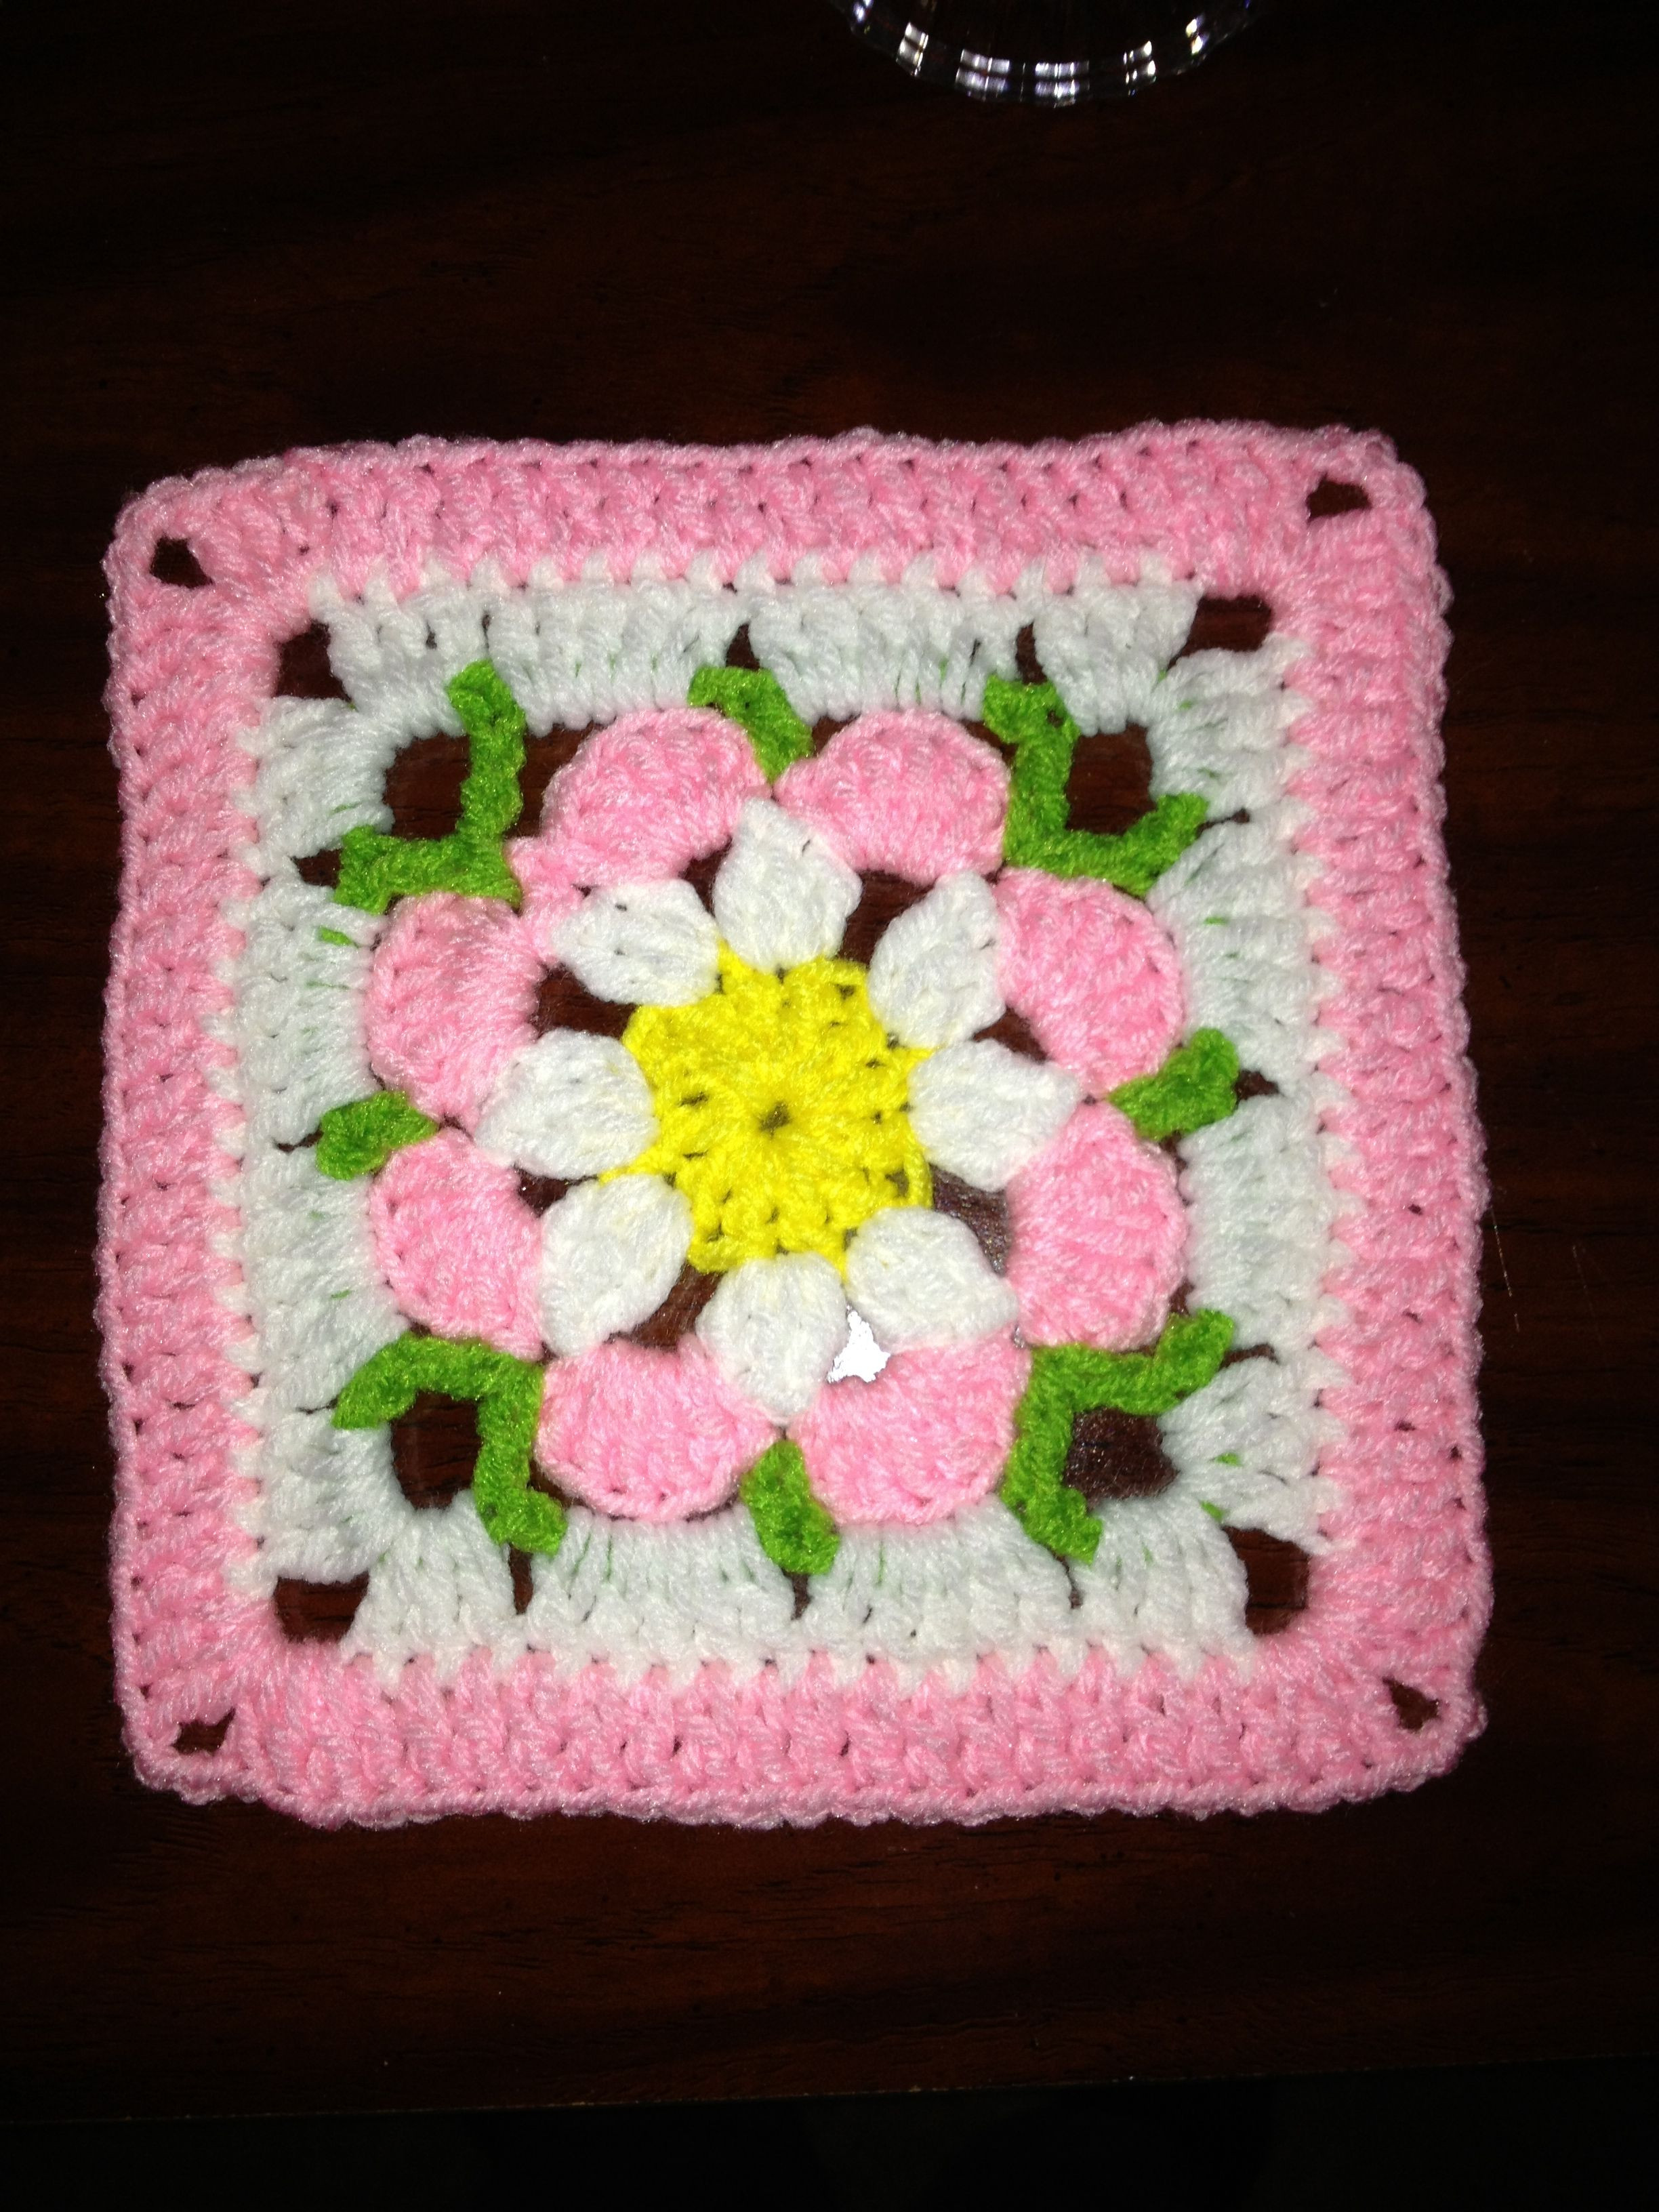 Flower Granny Square Awesome Flower Granny Square Crochet Of Wonderful 45 Pictures Flower Granny Square